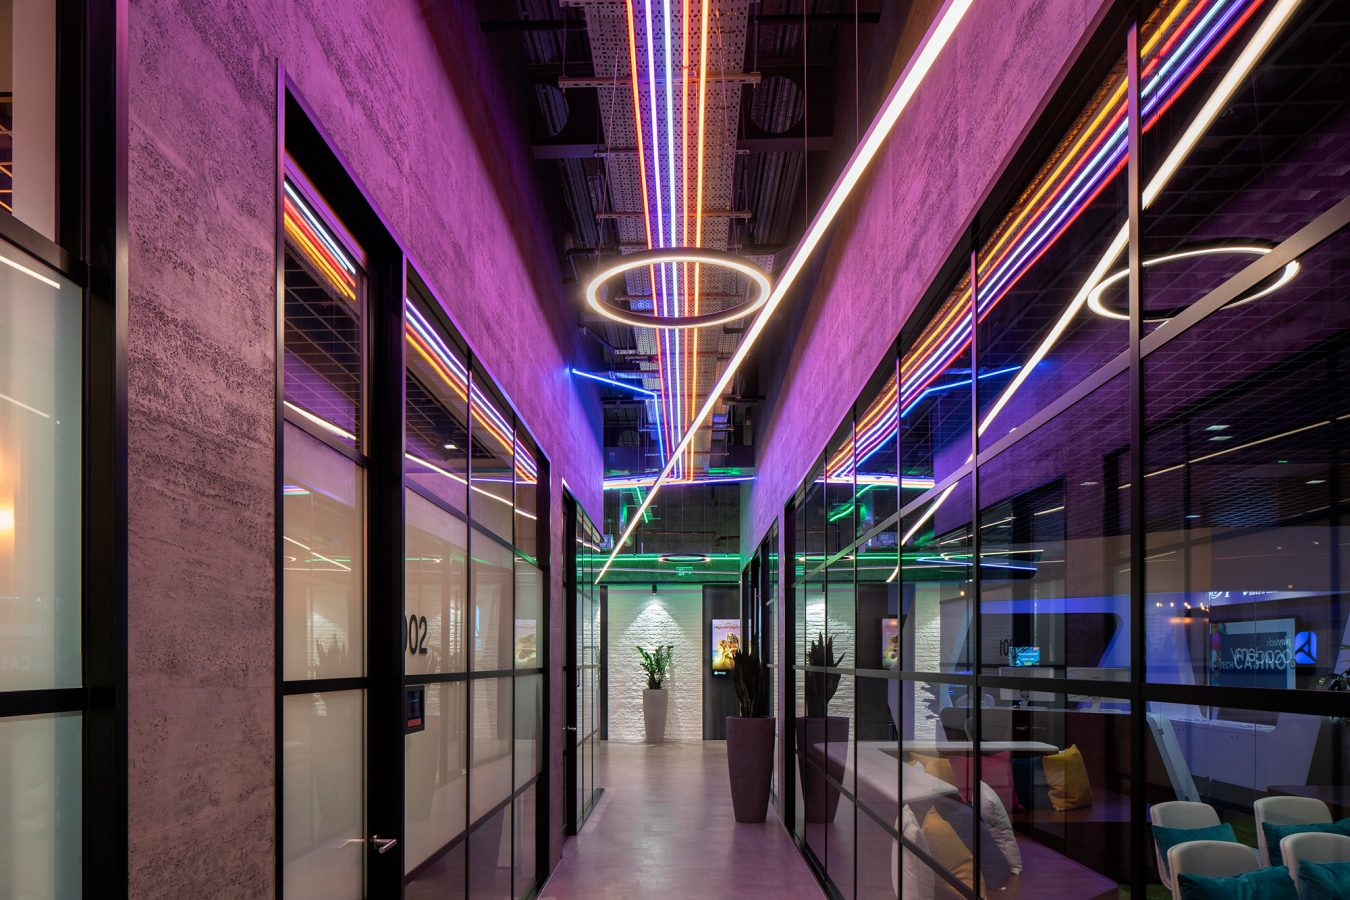 Industrial style design for office halloway and glazed doors and partitions, and coloured LED lights.